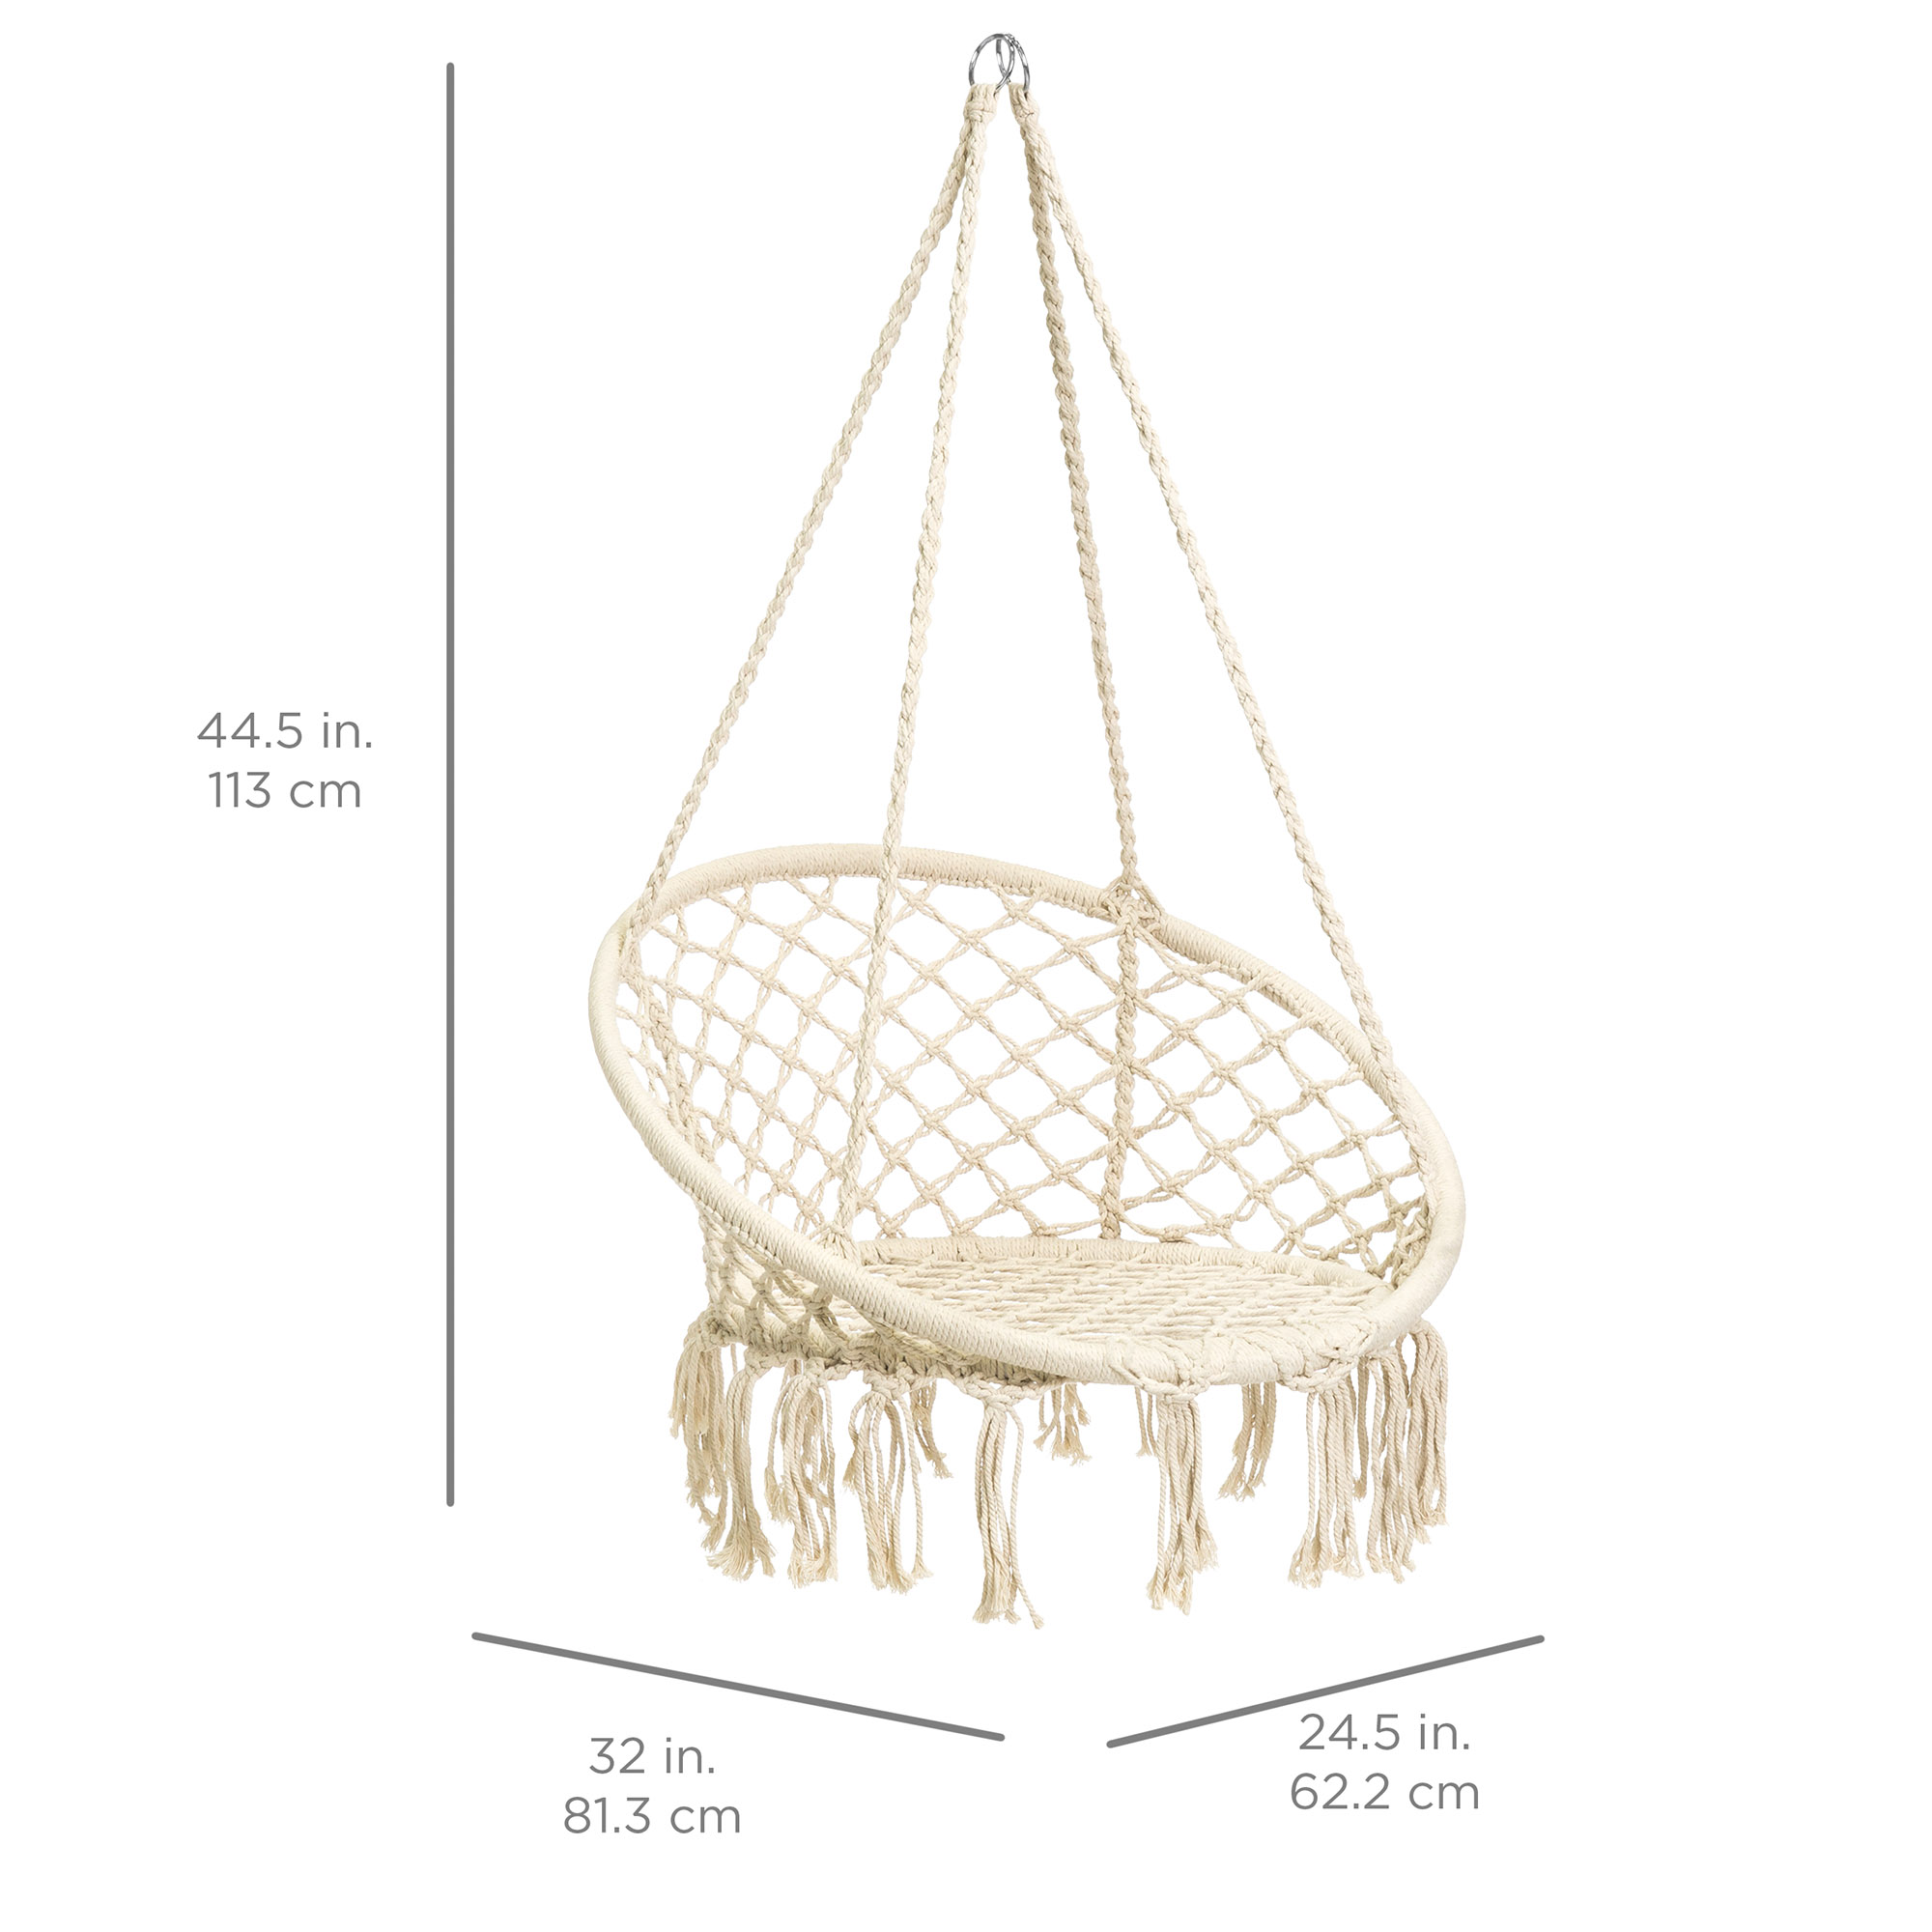 BCP-Handwoven-Cotton-Macrame-Hammock-Hanging-Chair-Swing-w-Backrest thumbnail 14